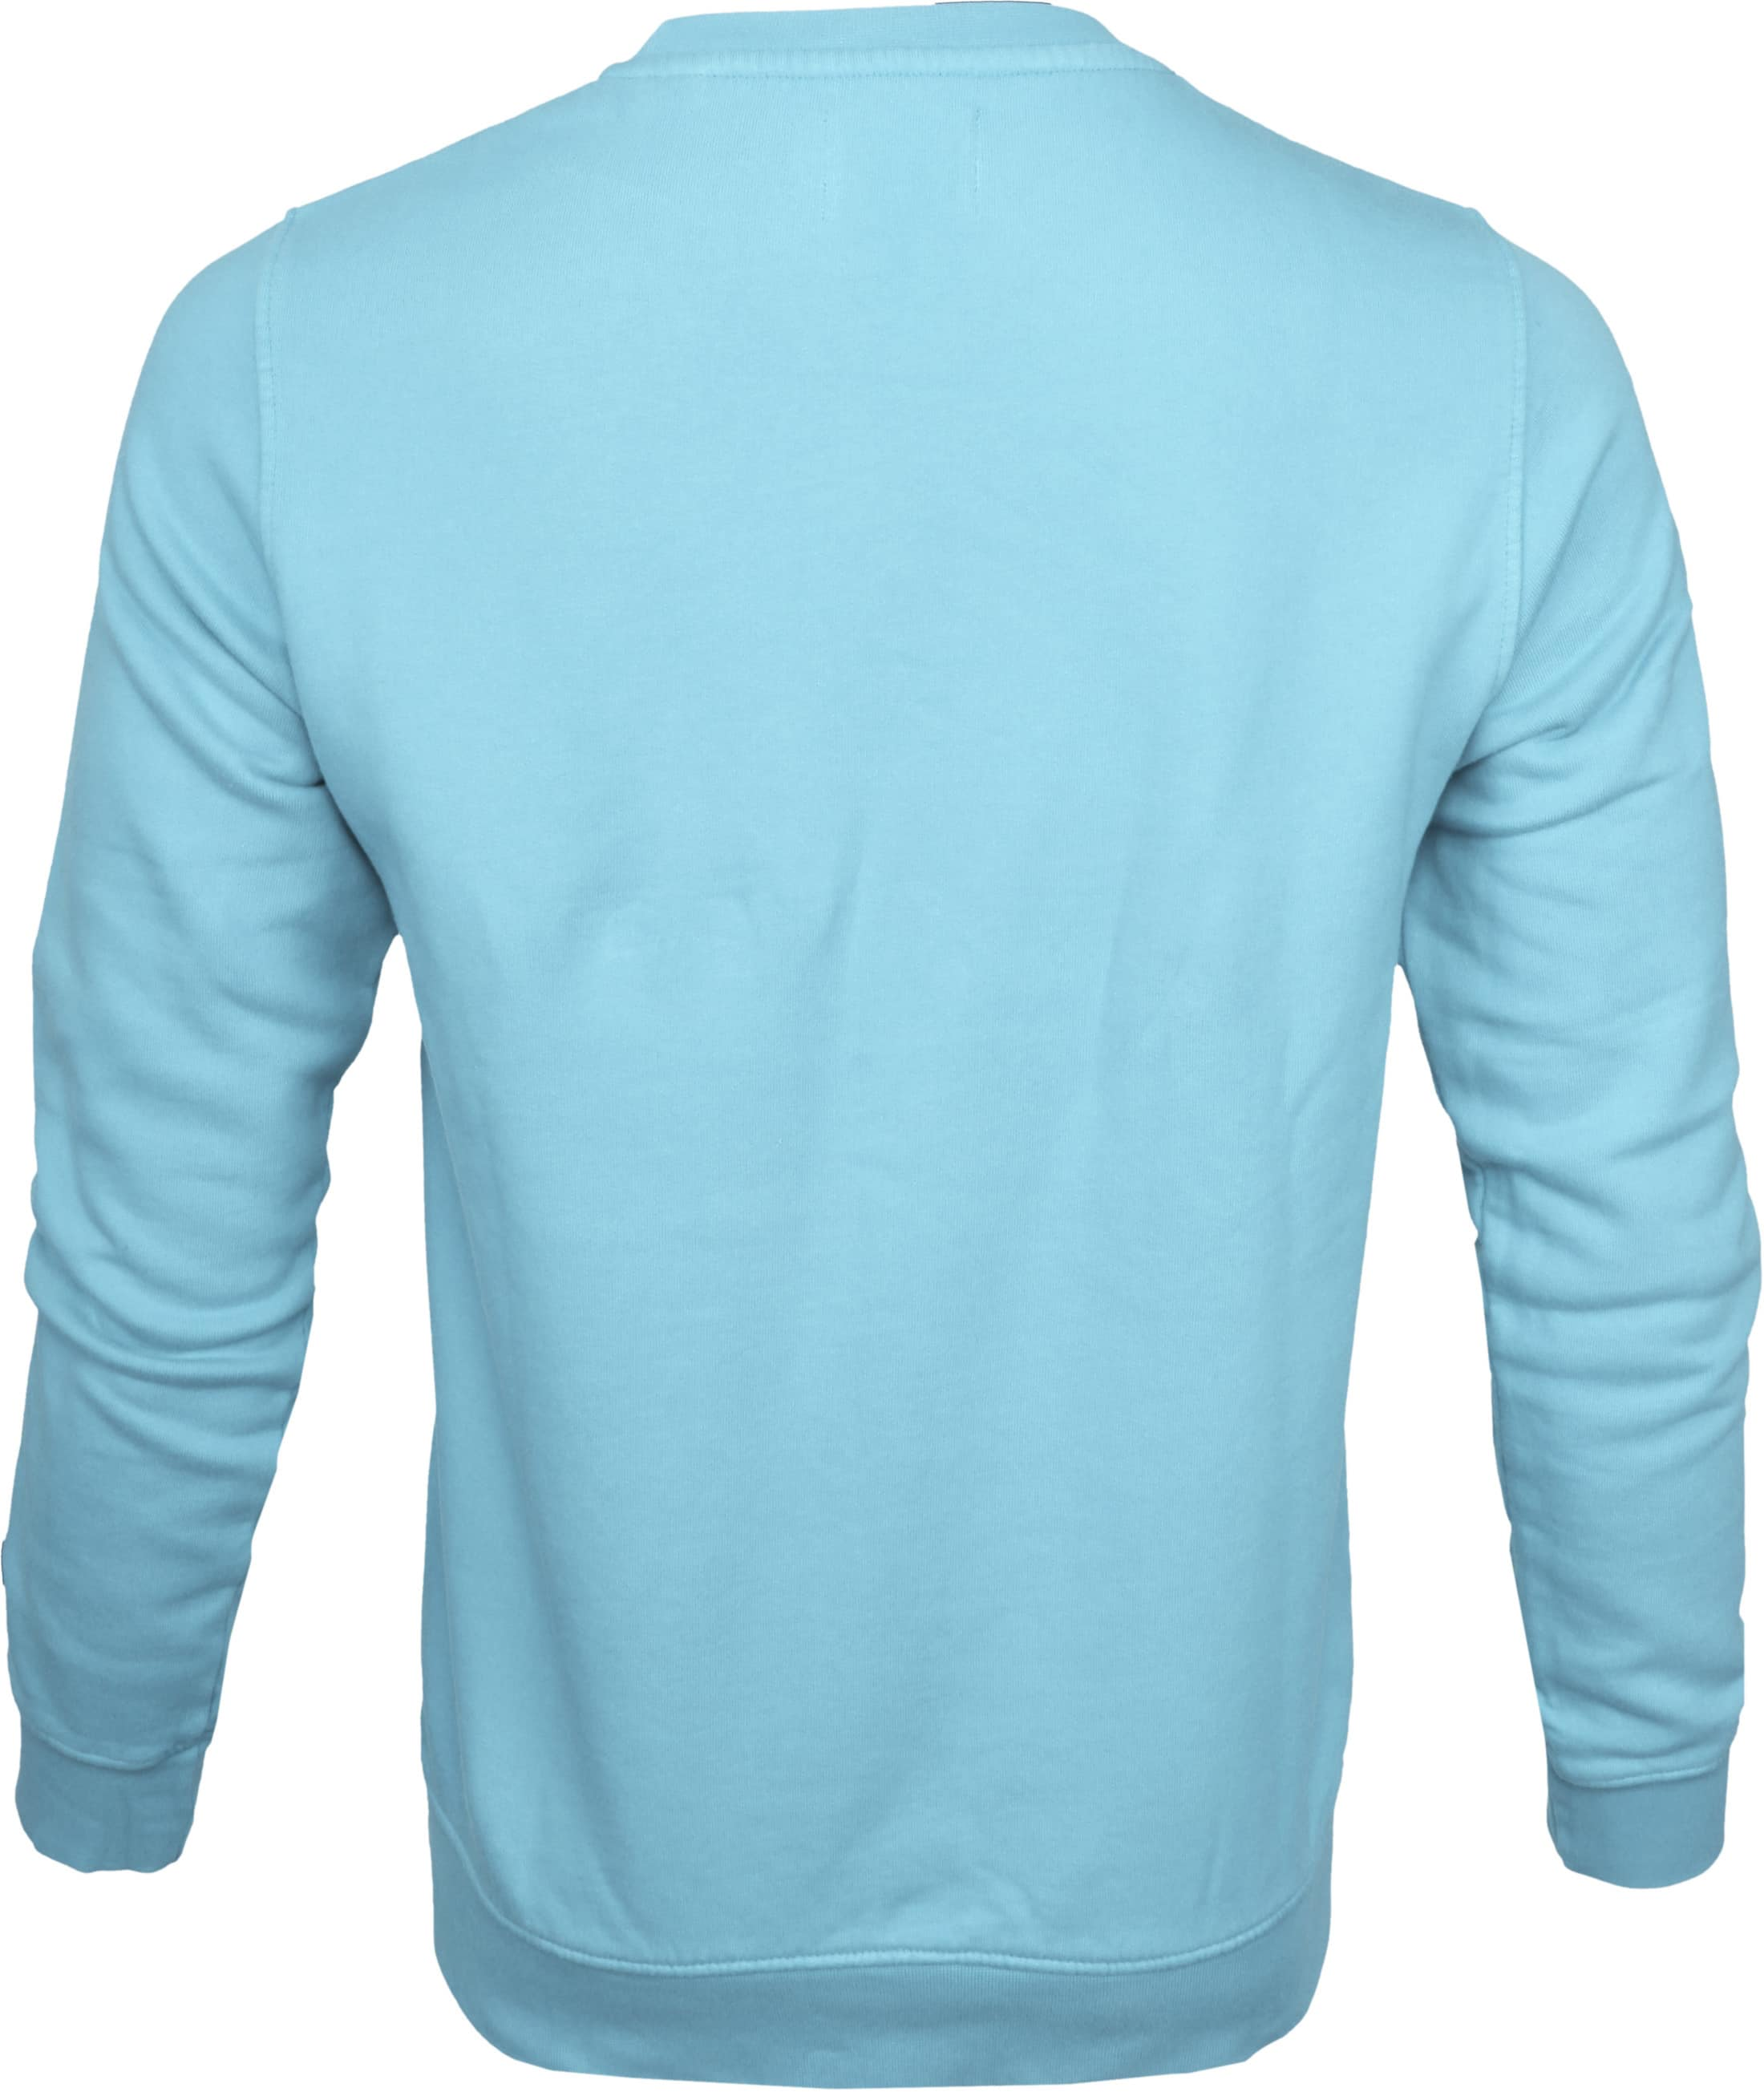 Colorful Standard Sweater Polar Blue foto 2